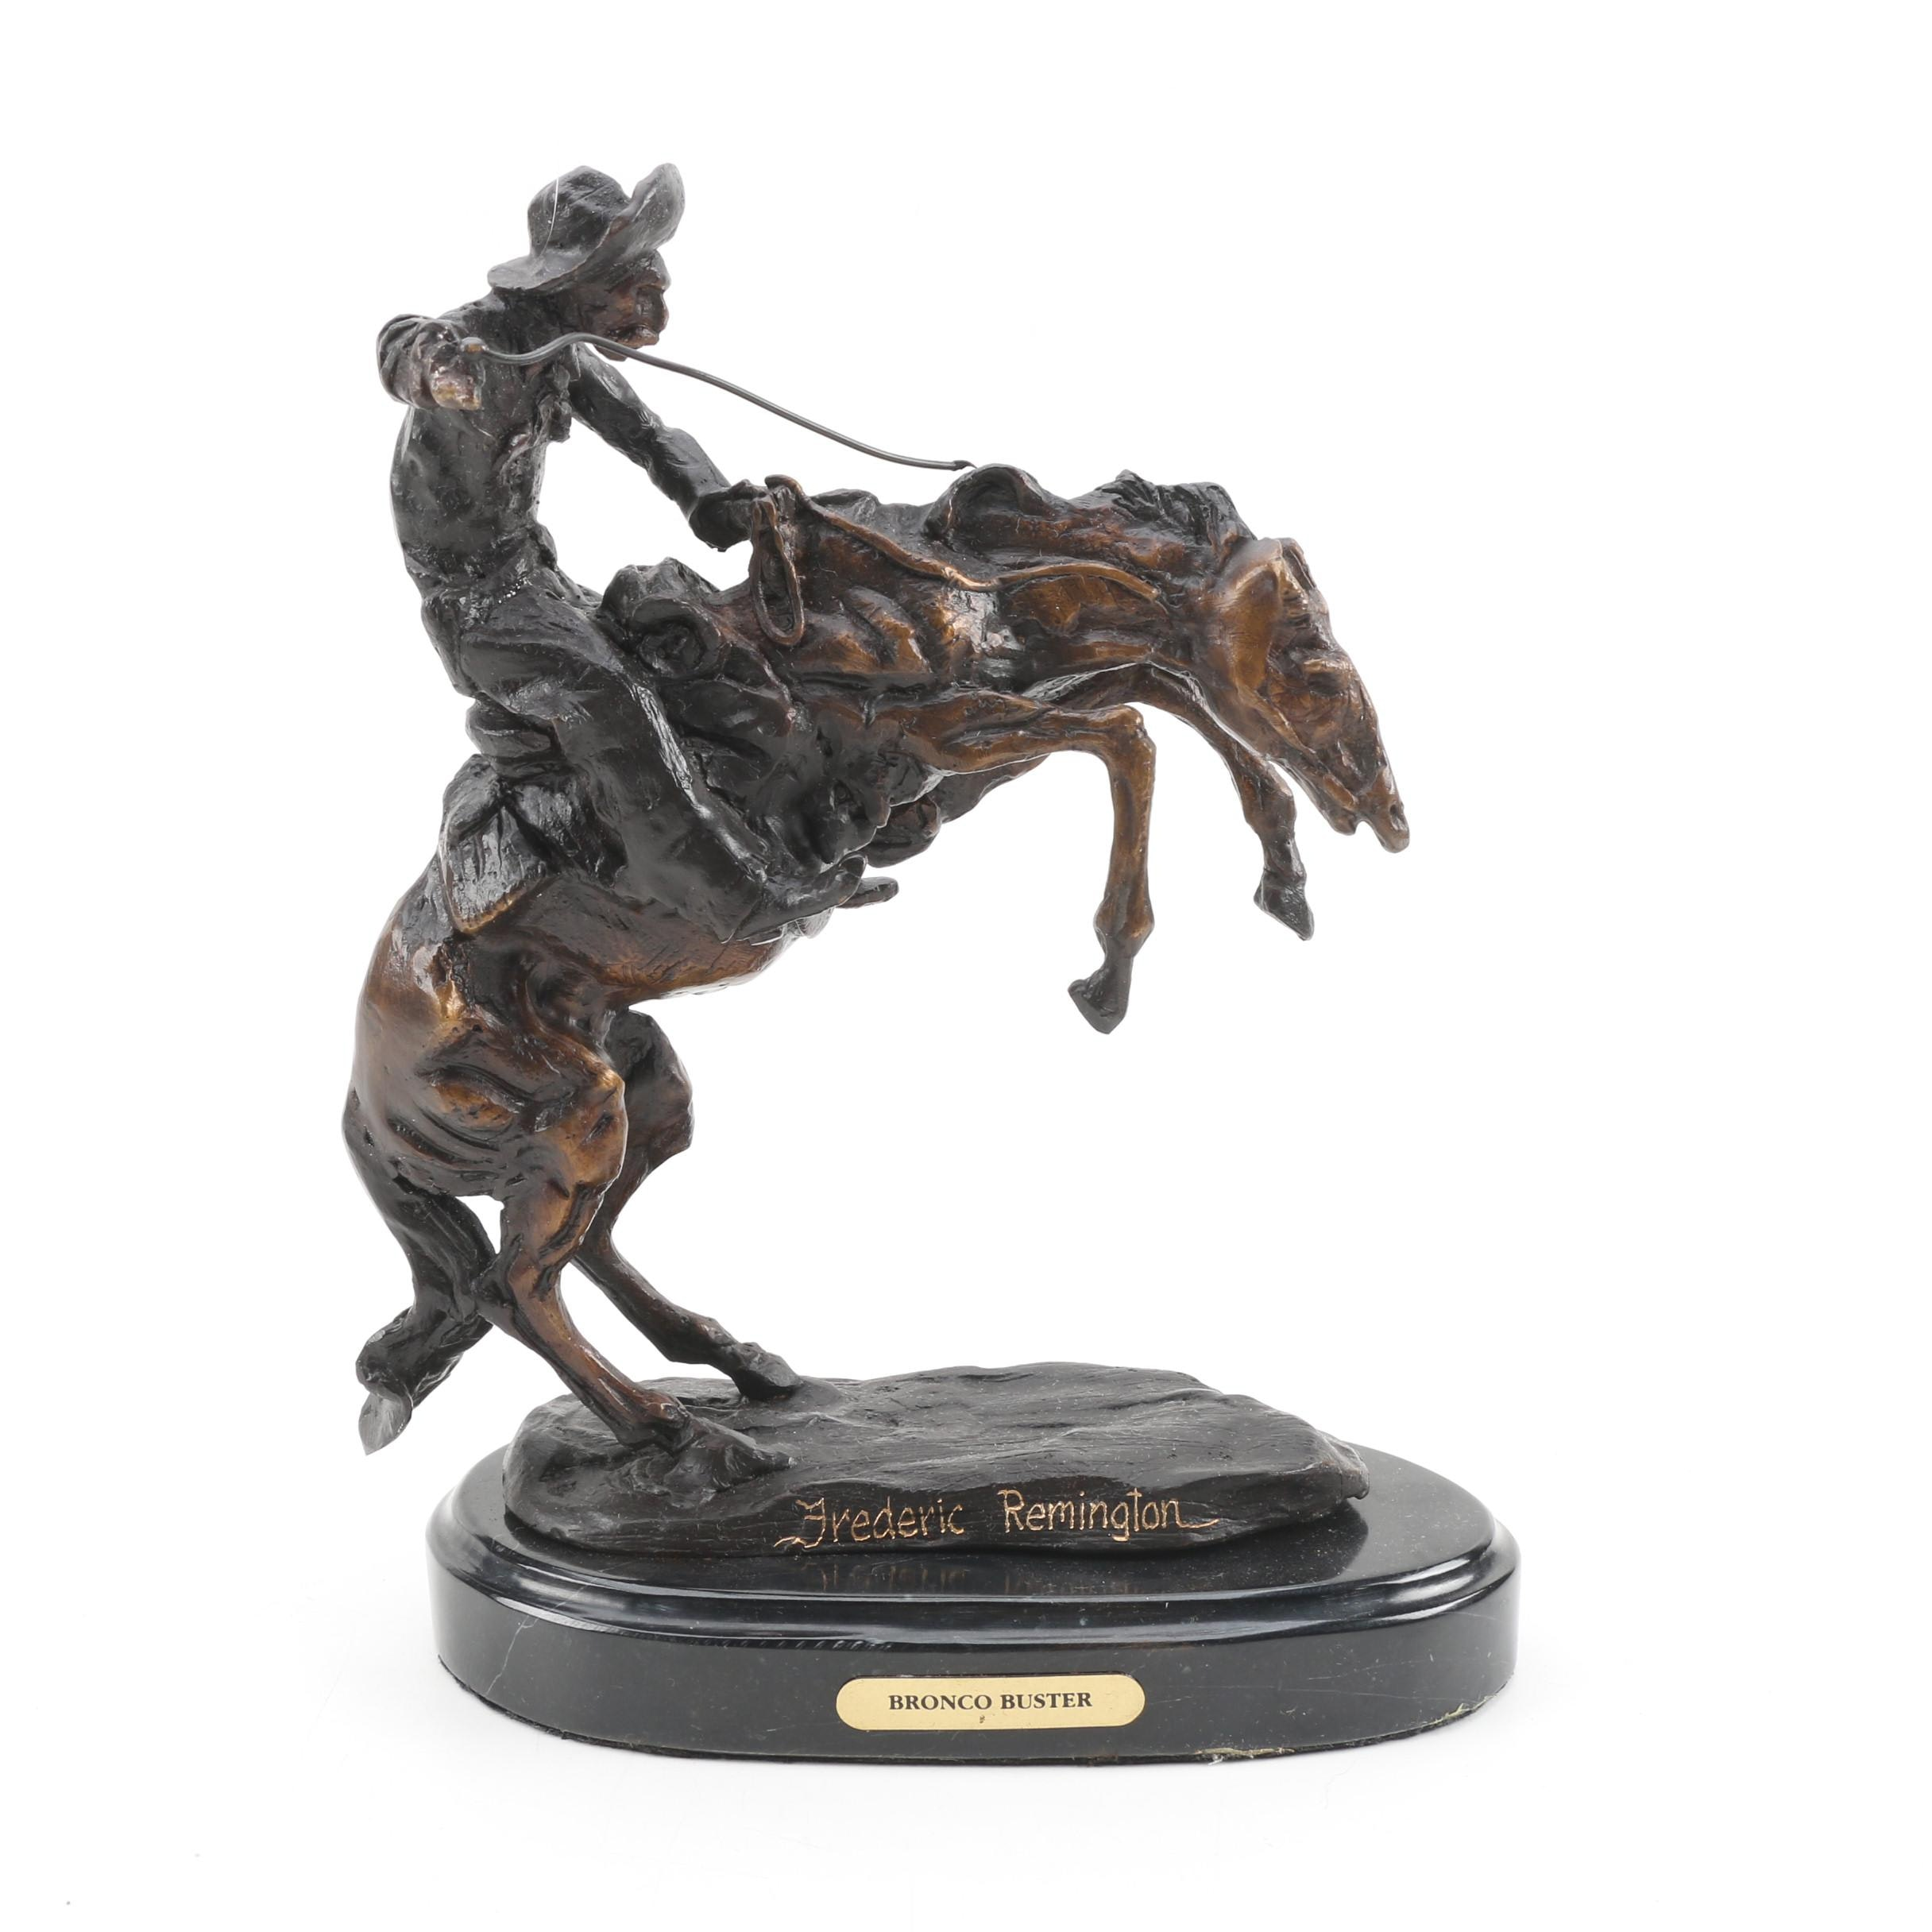 "Cast Bronze Sculpture After Frederick Remington ""Bronco Buster"""